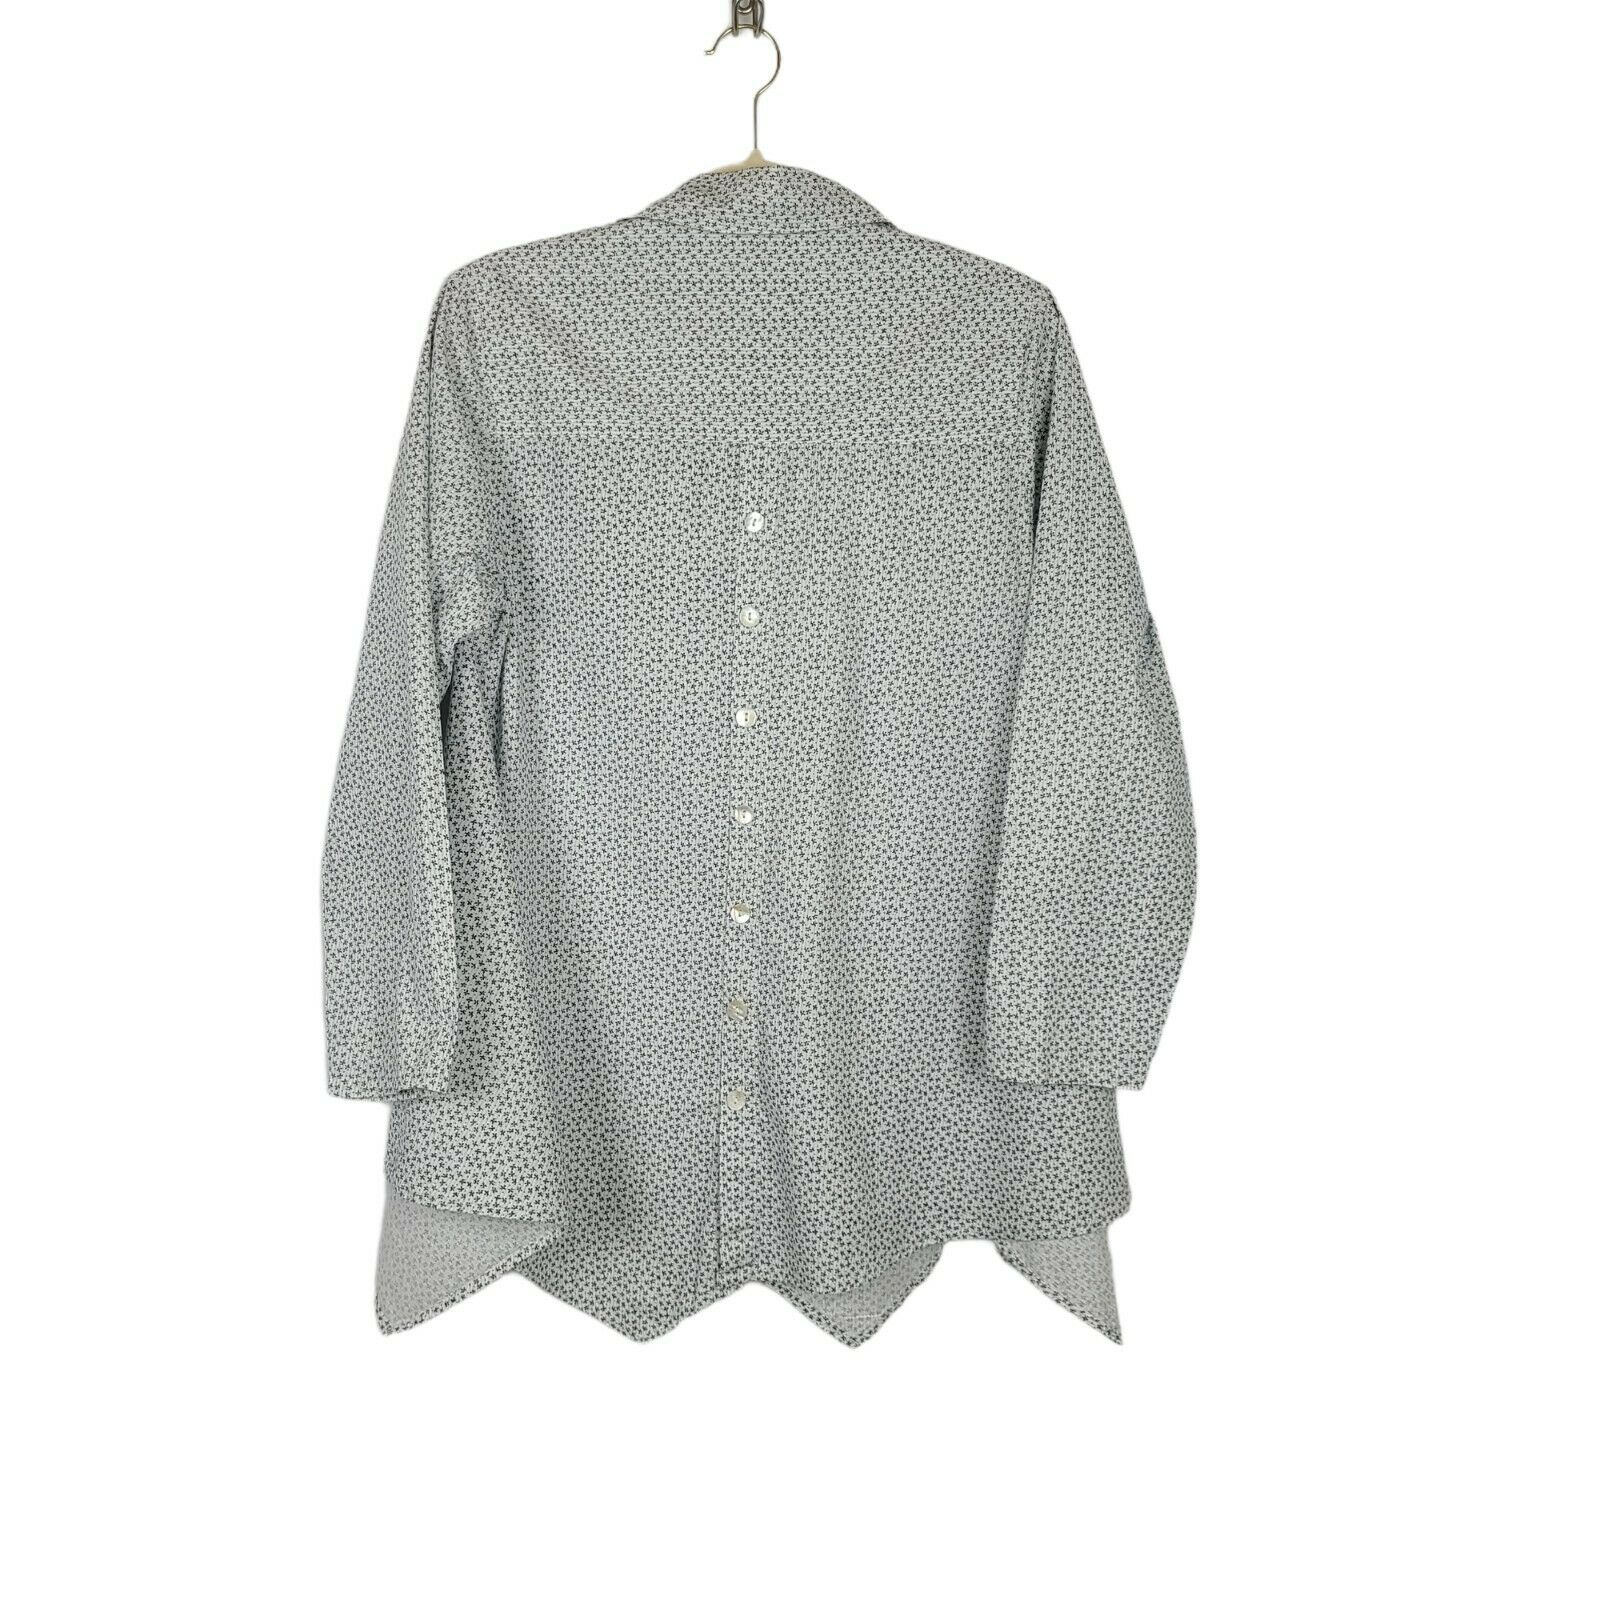 Tulip Women's Button Down Blouse Size Small Overs… - image 2